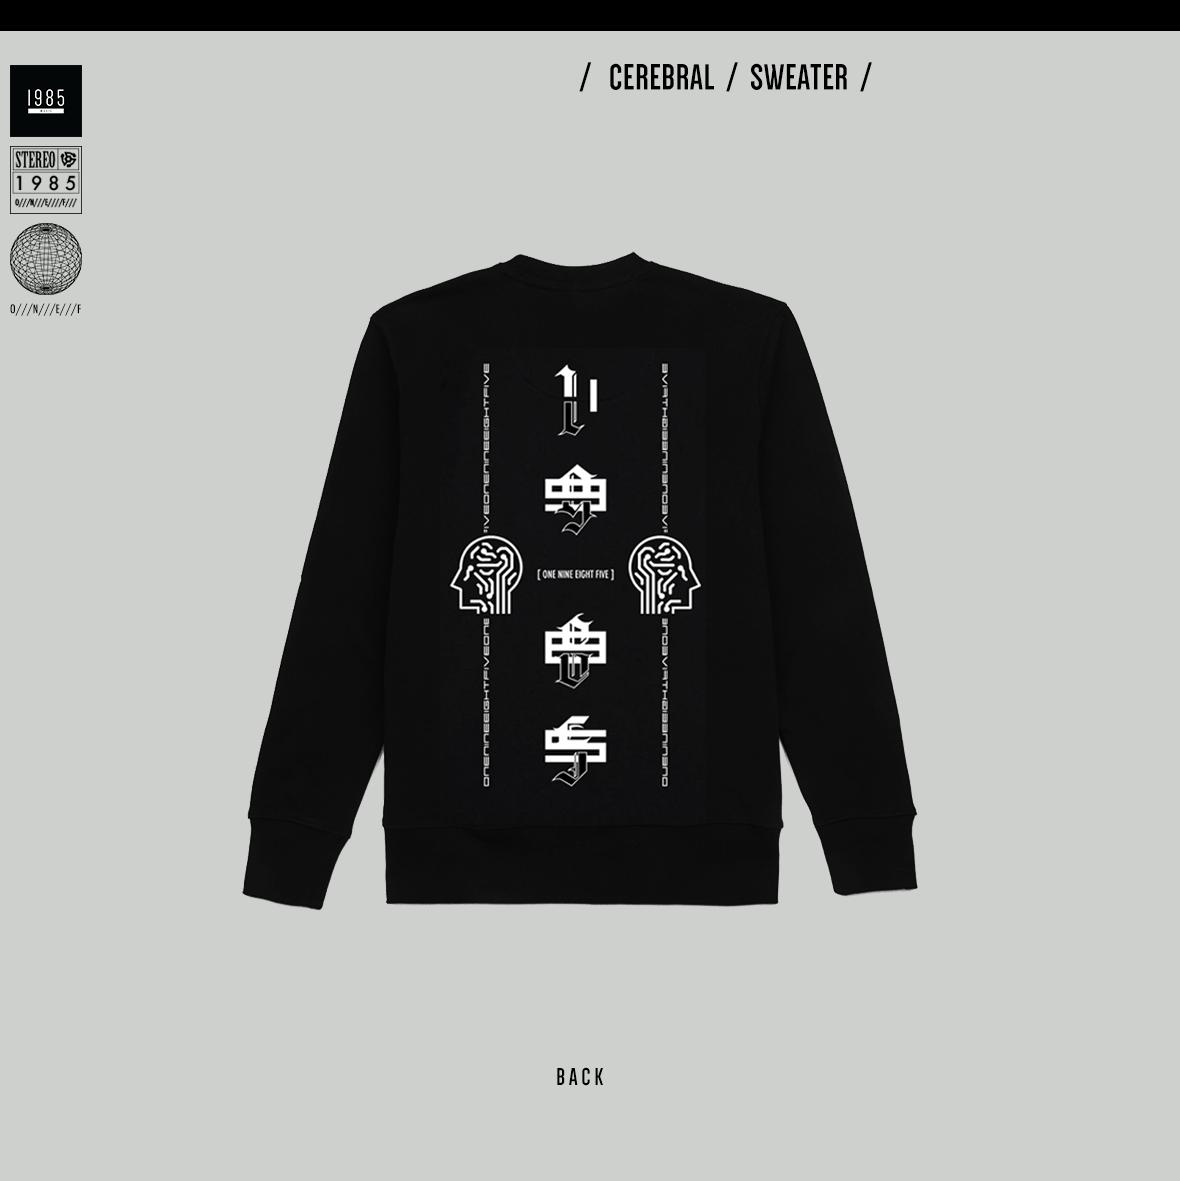 Cerebral Sweater (Crew Neck)